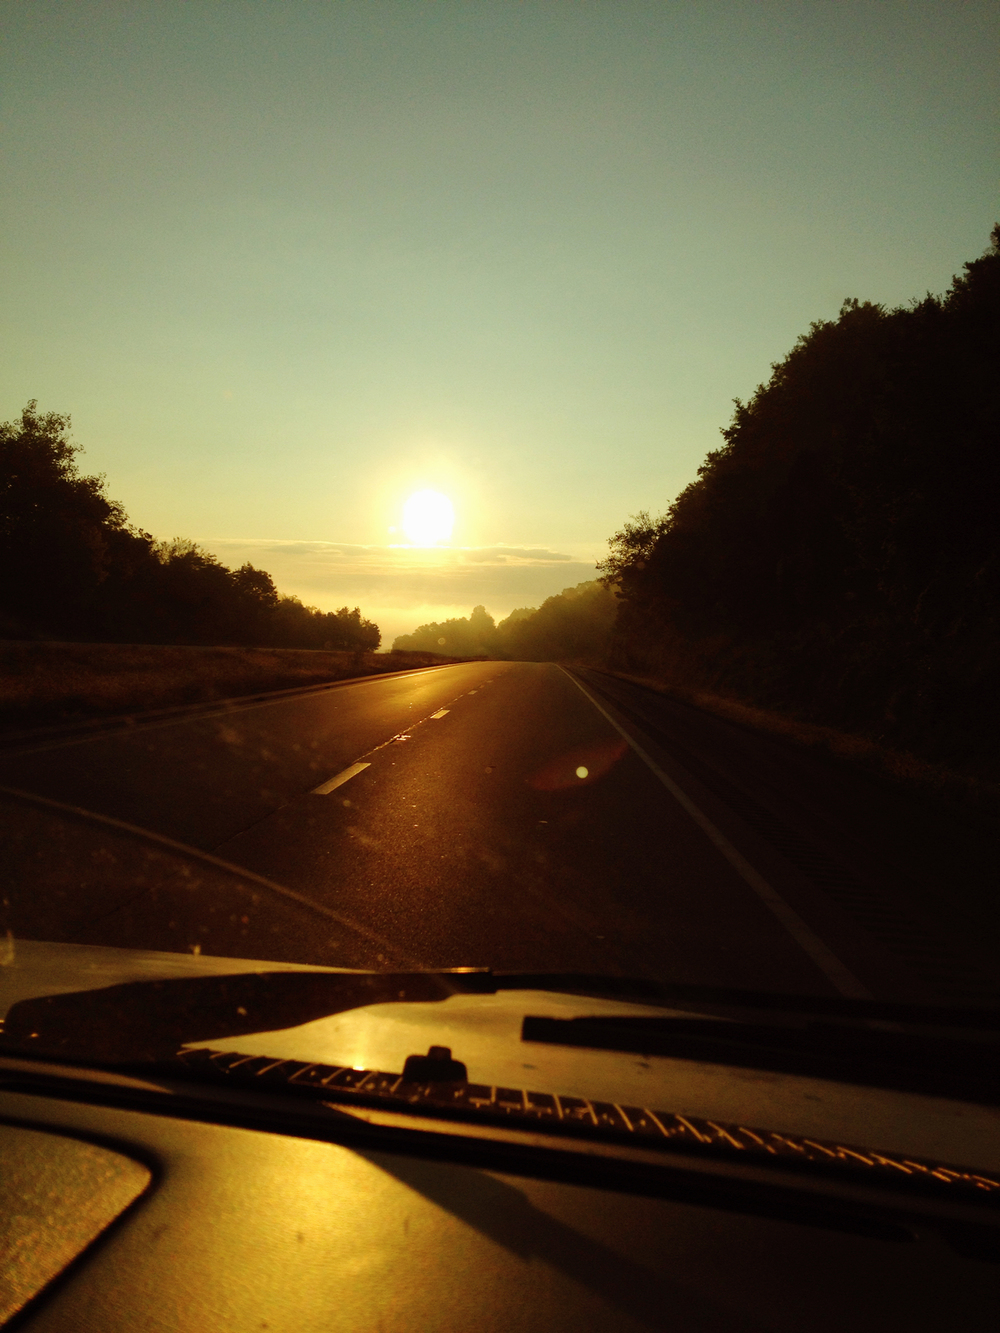 Miles of open road at sunrise.